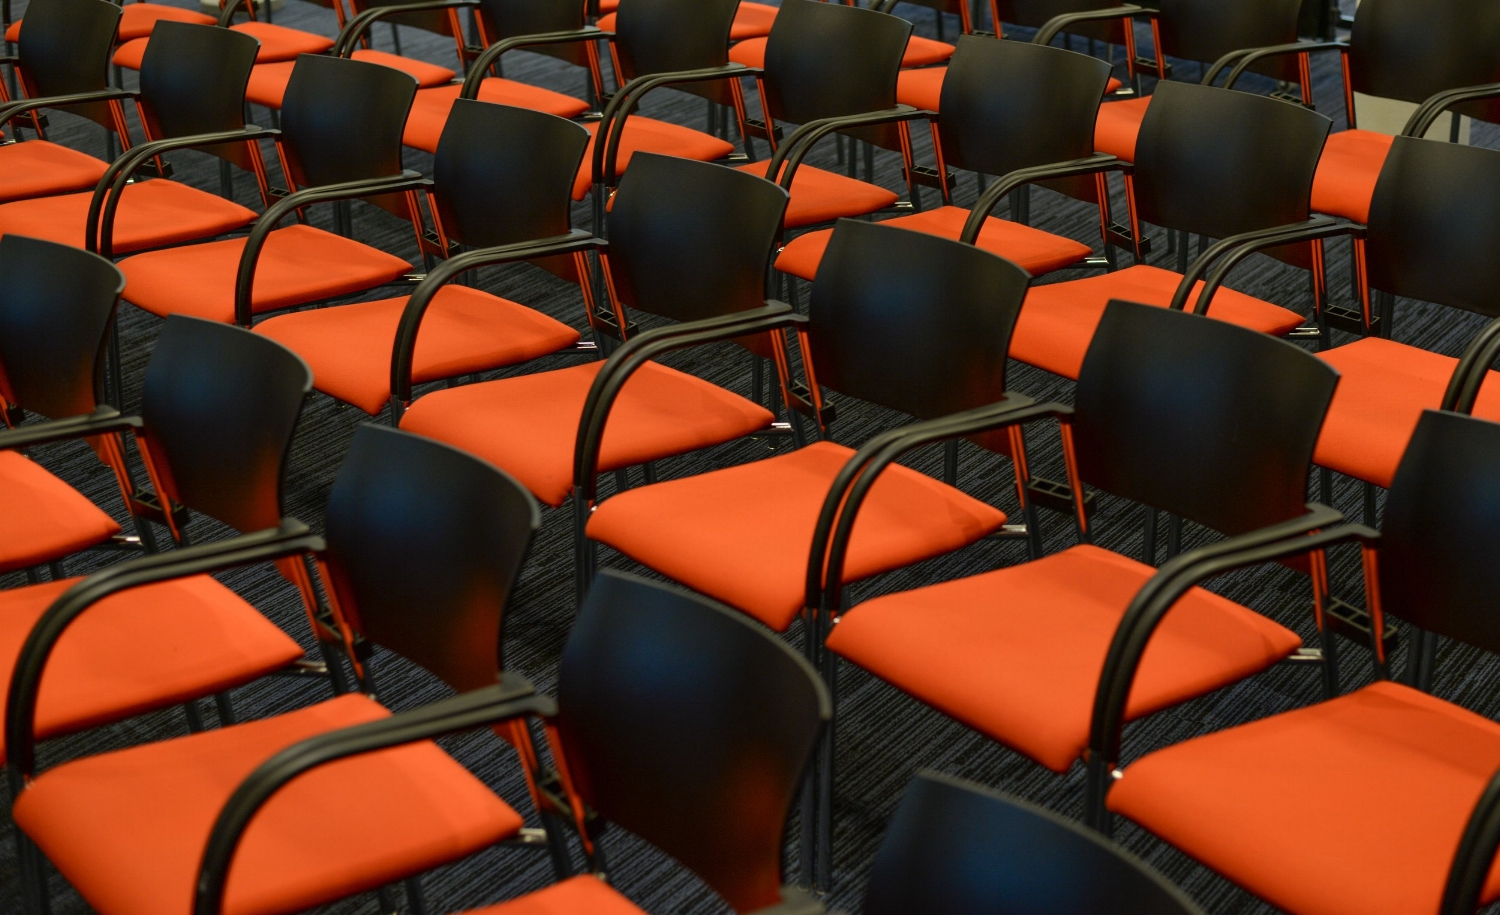 auditorium-chairs-conference-722708.jpg